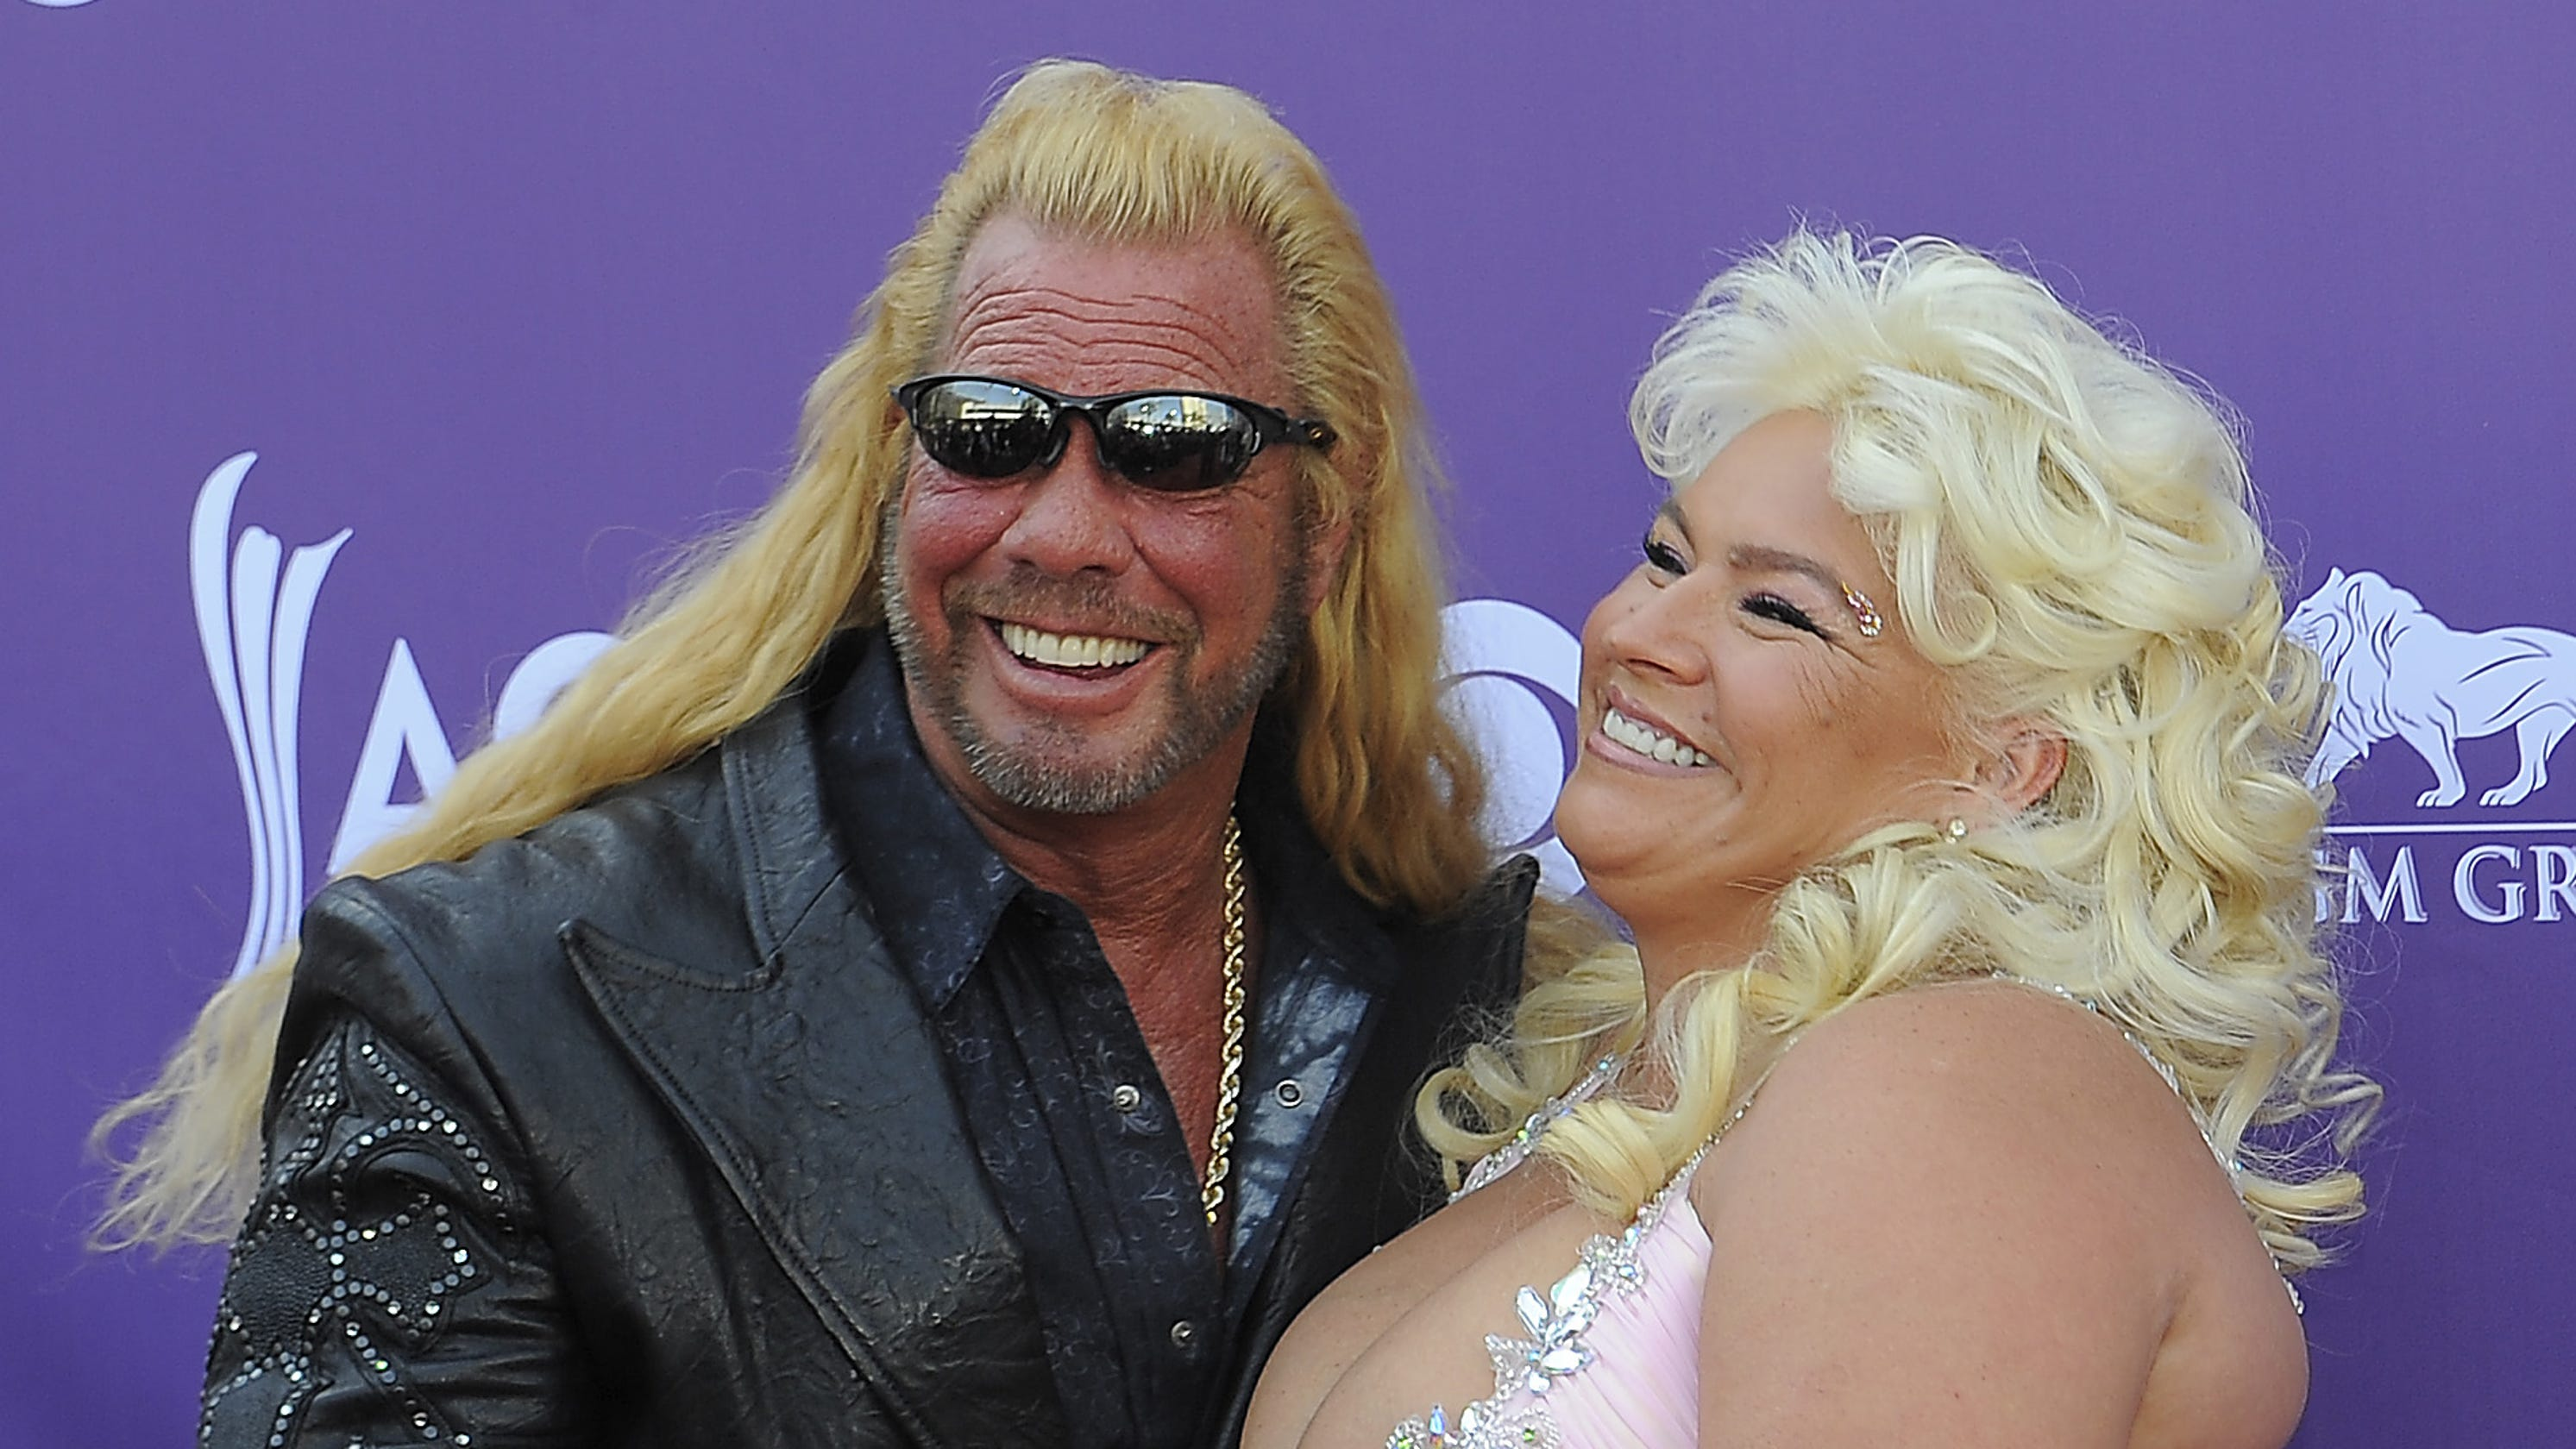 She is not doing good,' 'Dog the Bounty Hunter' star says of